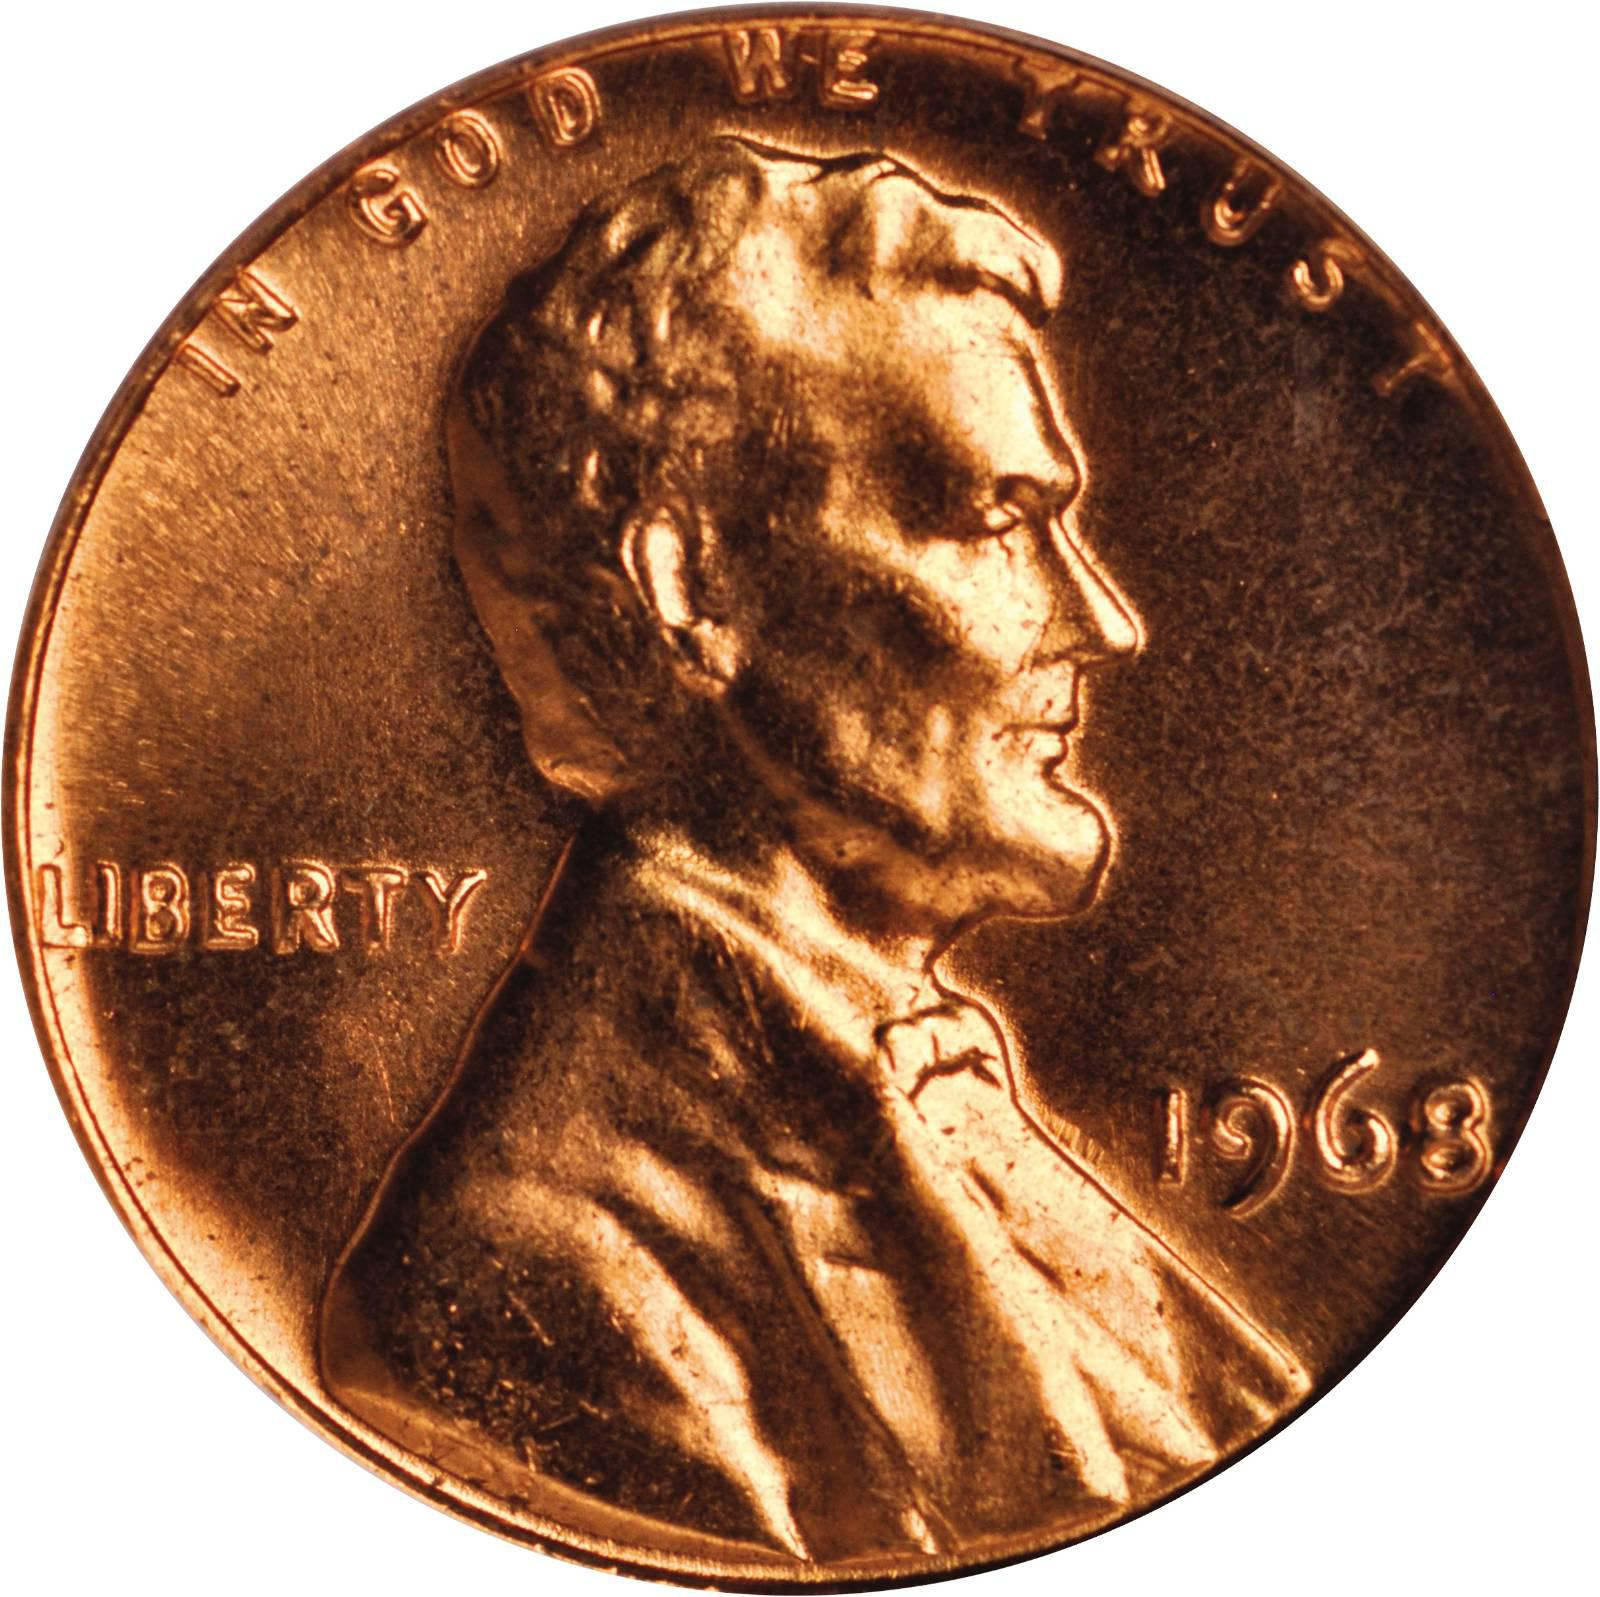 Value Of 1968 Lincoln Memorial Cent